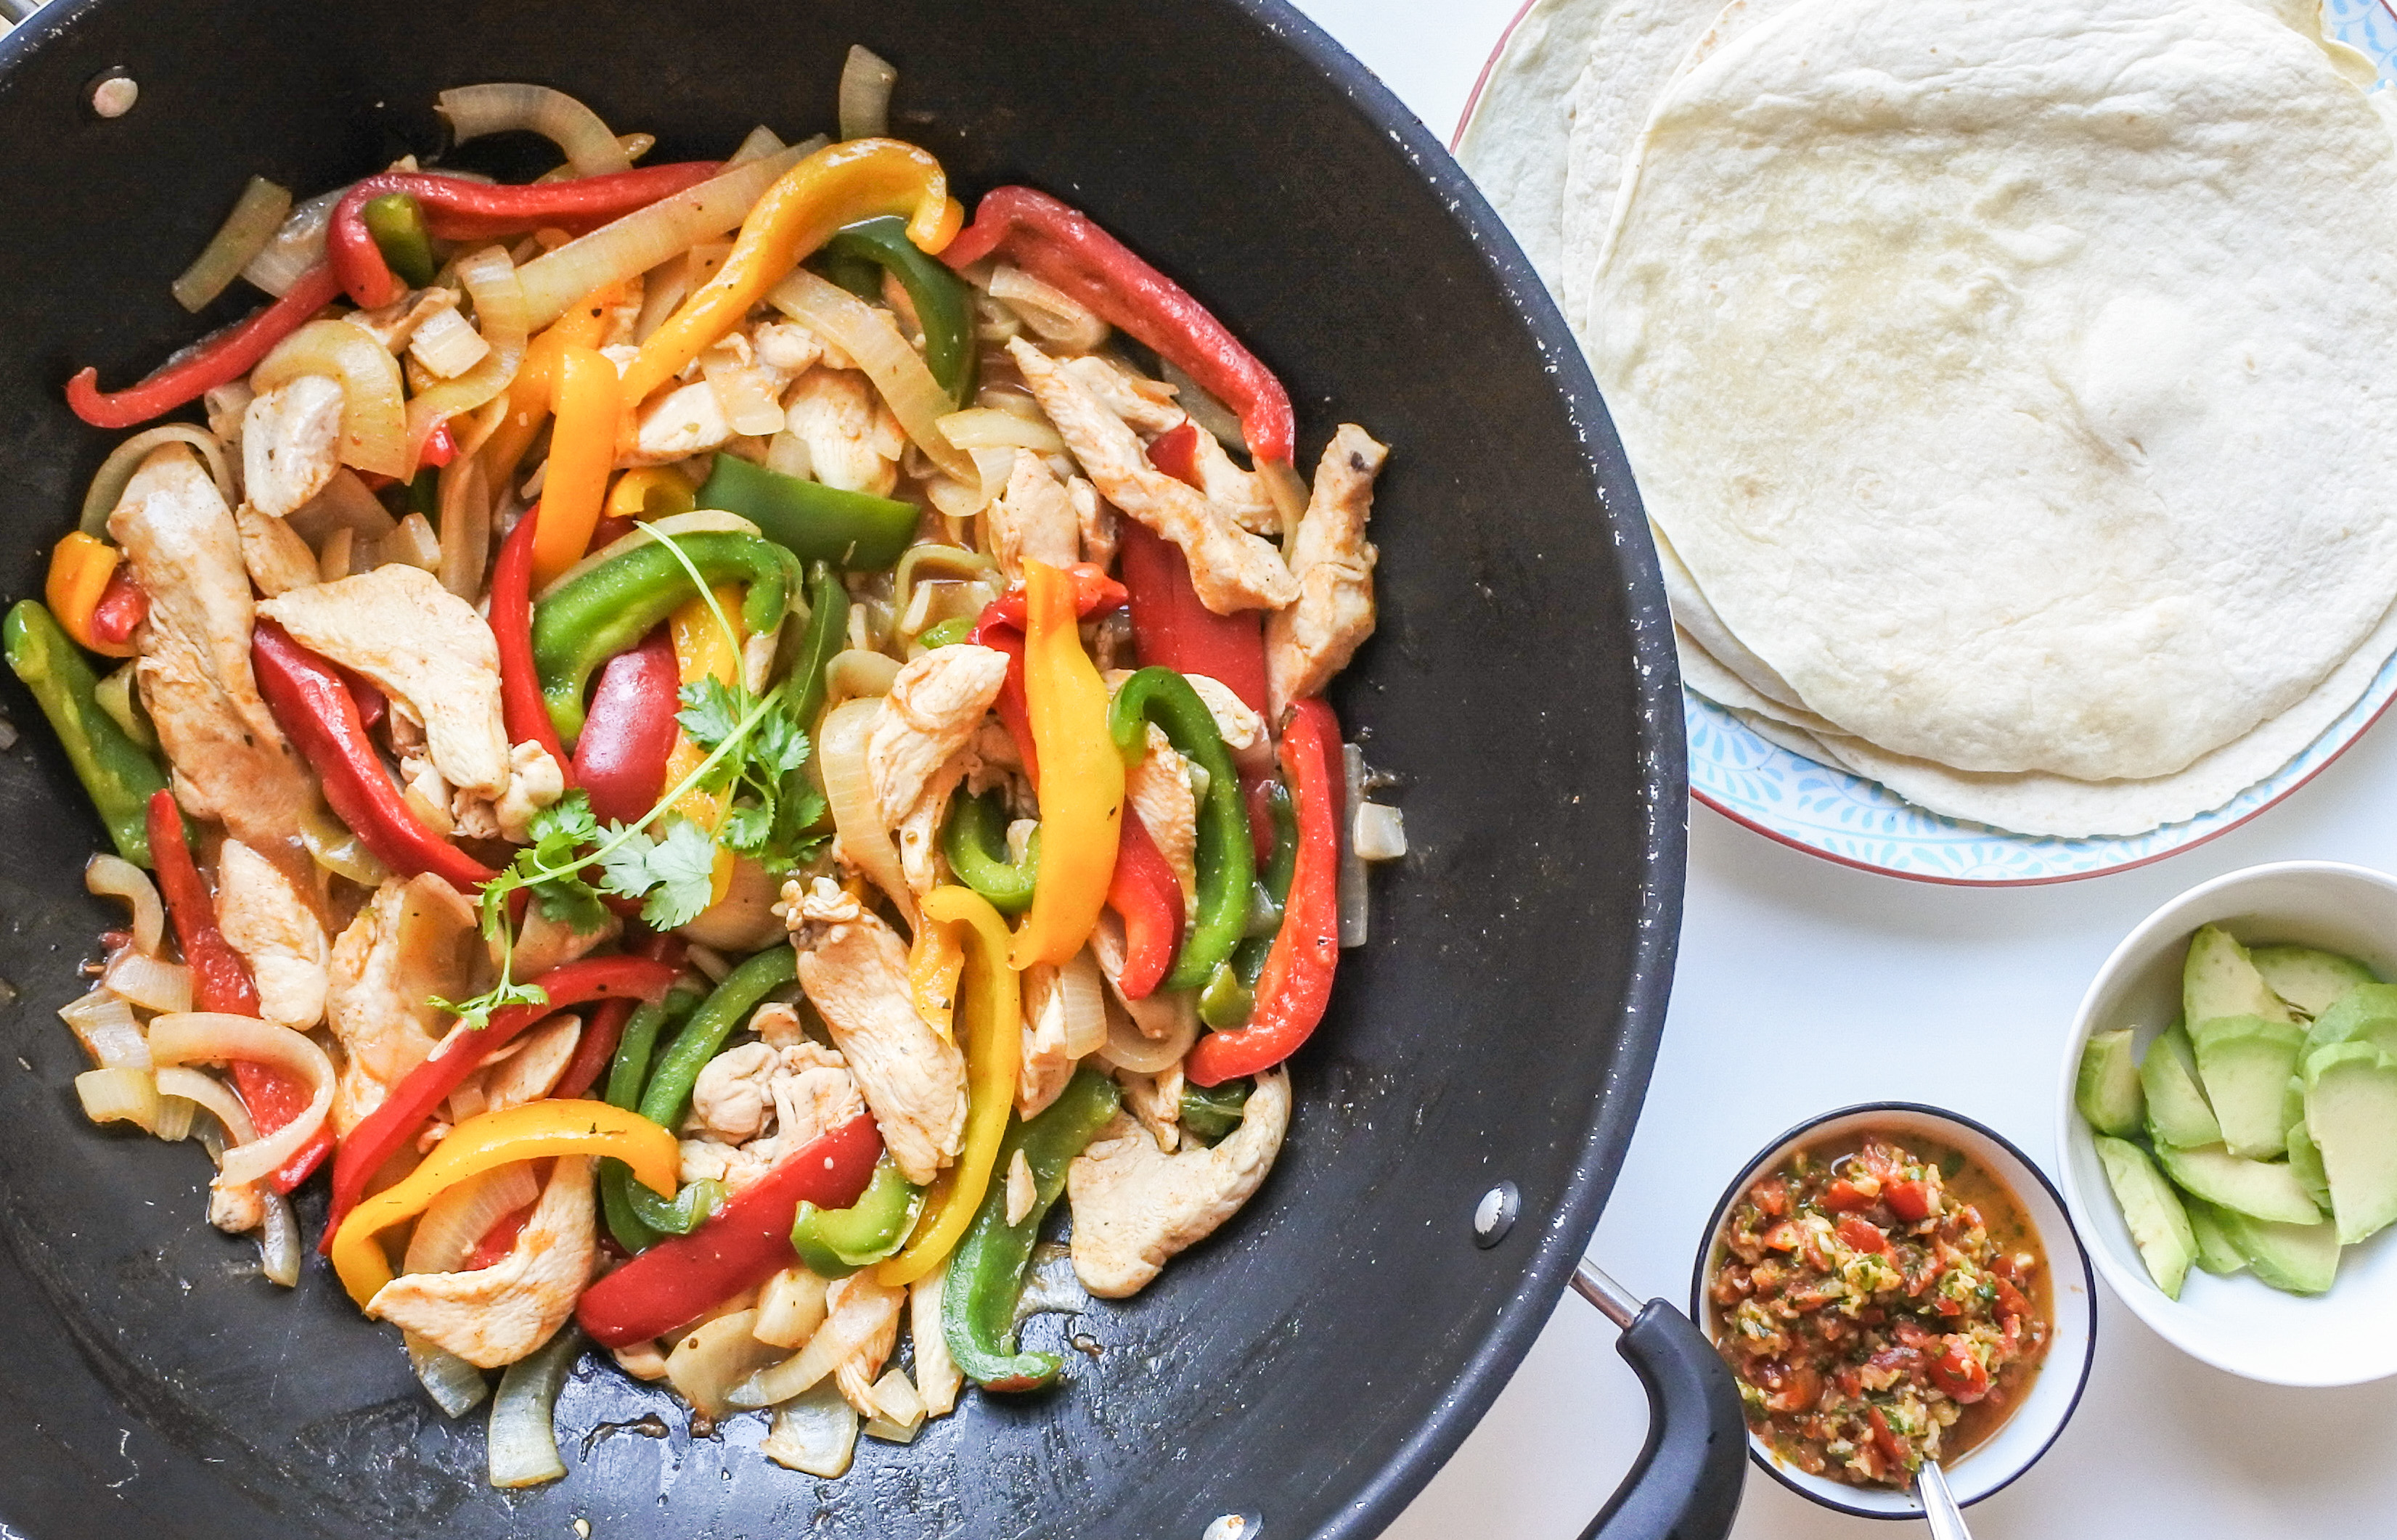 A skillet of chicken fajitas served alongside flour tortillas, salsa and avocado